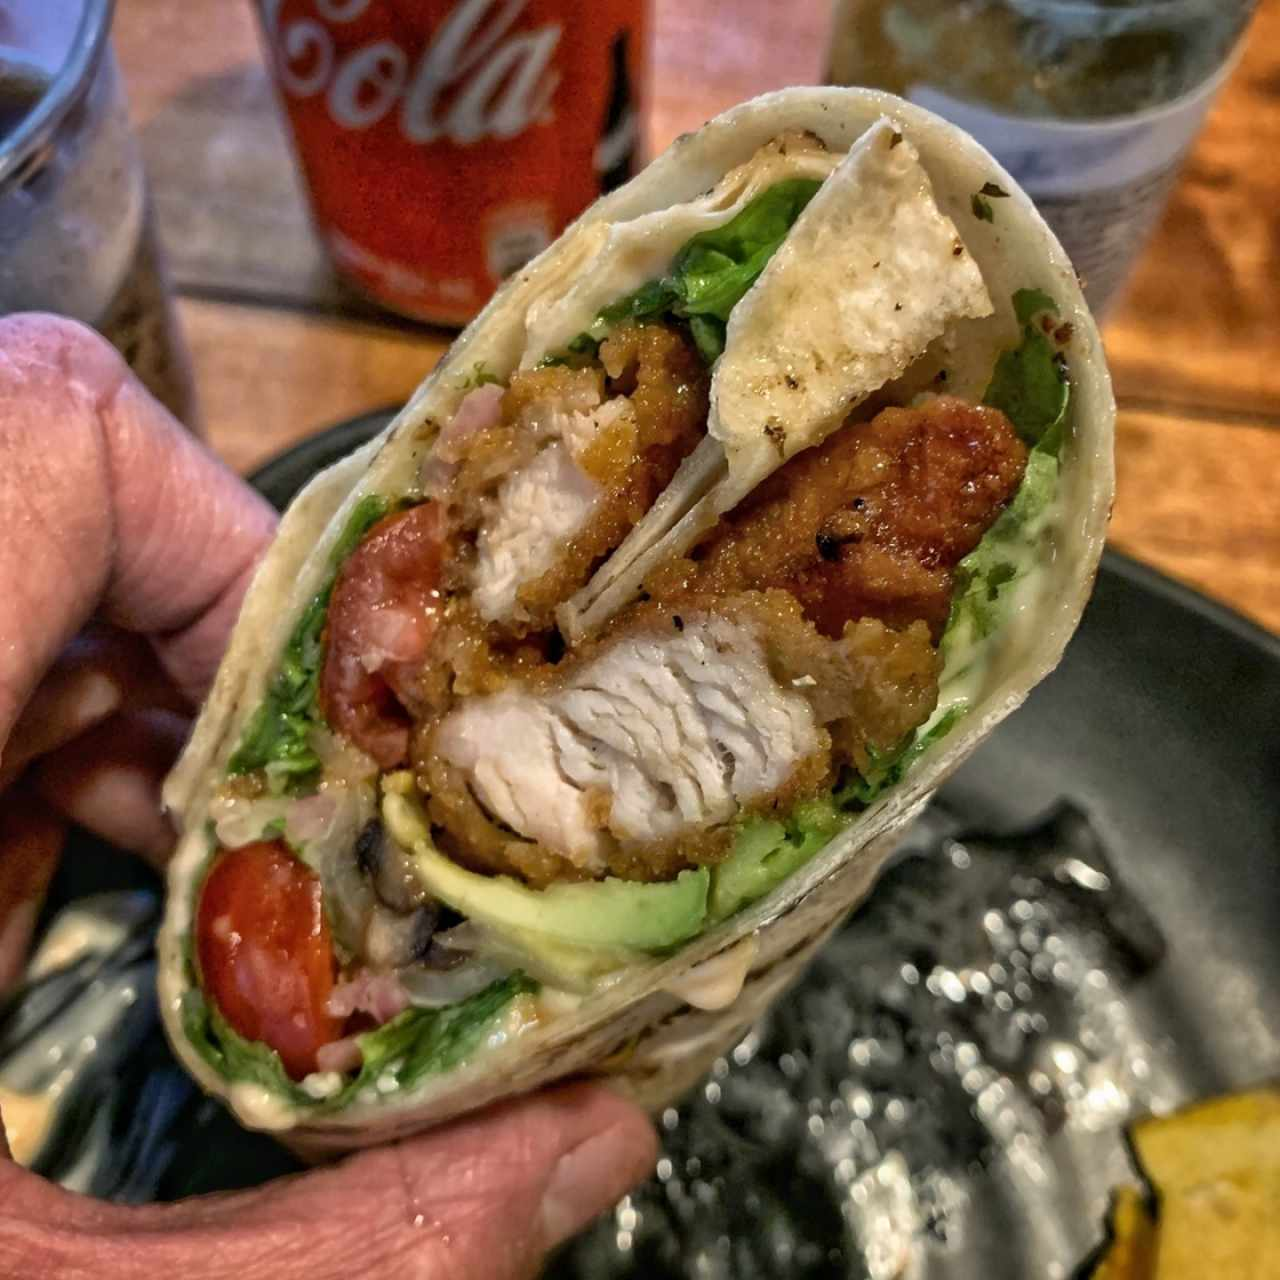 Wrap de Pollo (Spicy honey chicken wrap), está delicioso